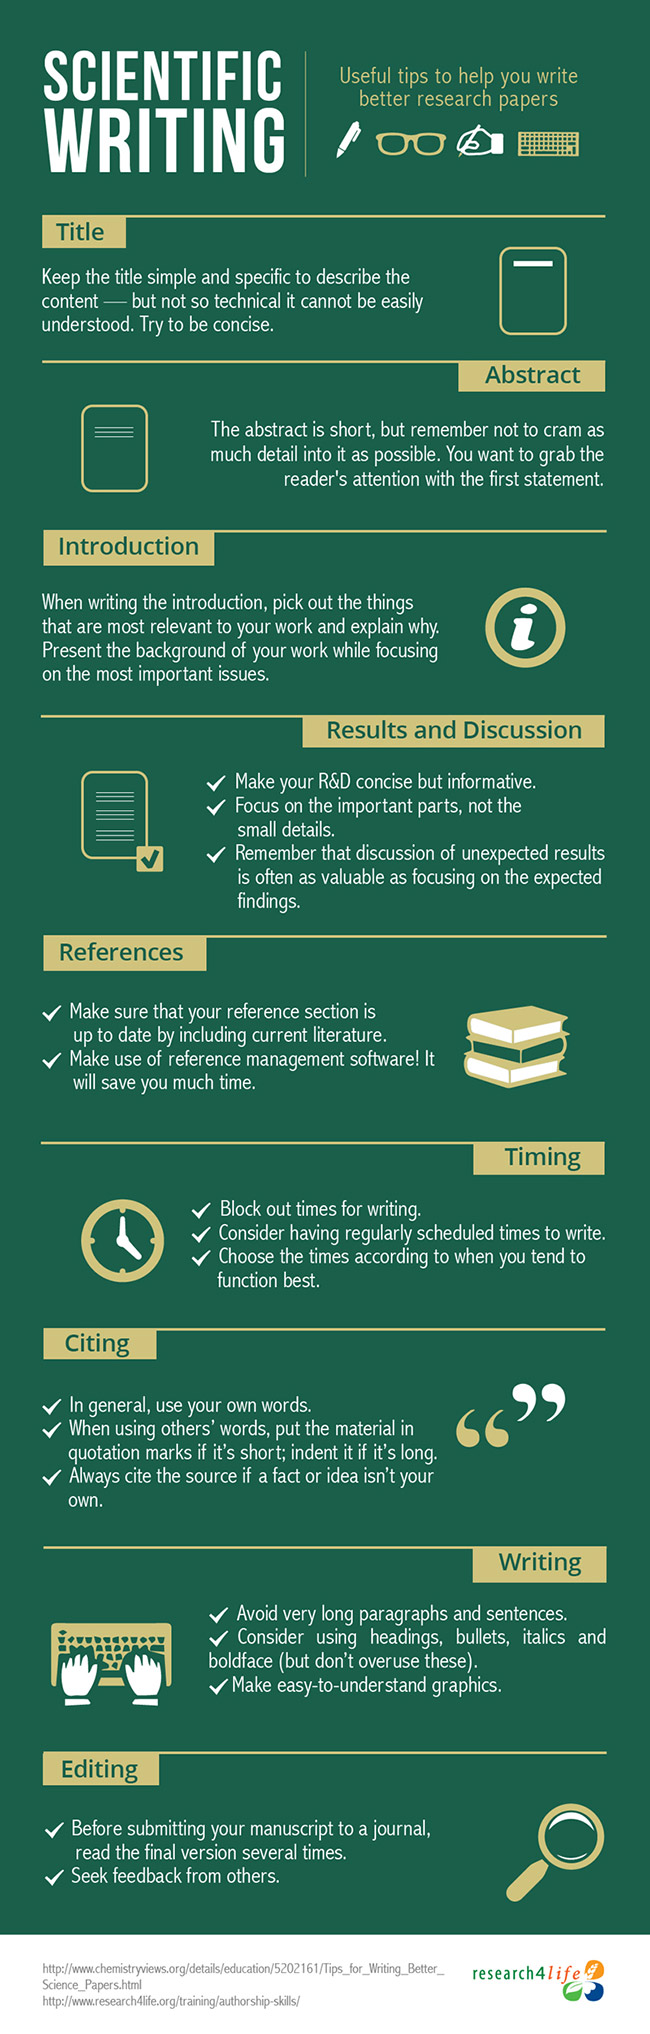 infographic science writing tips